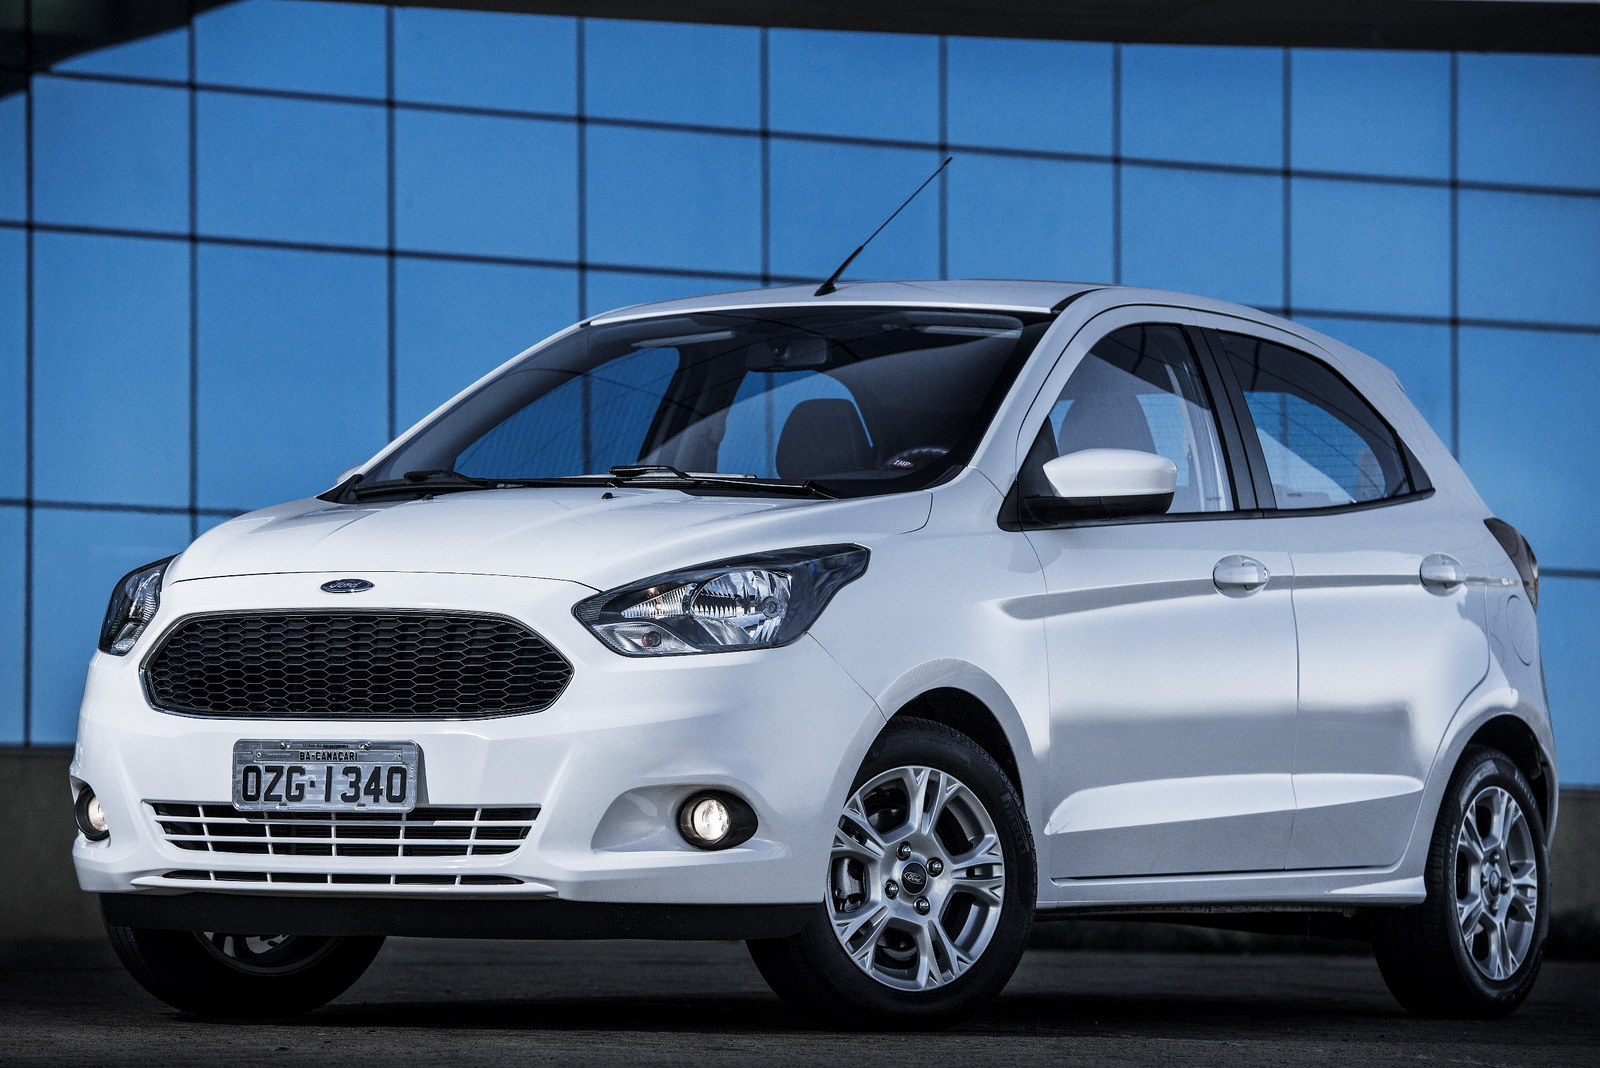 new ford ka officially confirmed for europe carscoops. Black Bedroom Furniture Sets. Home Design Ideas